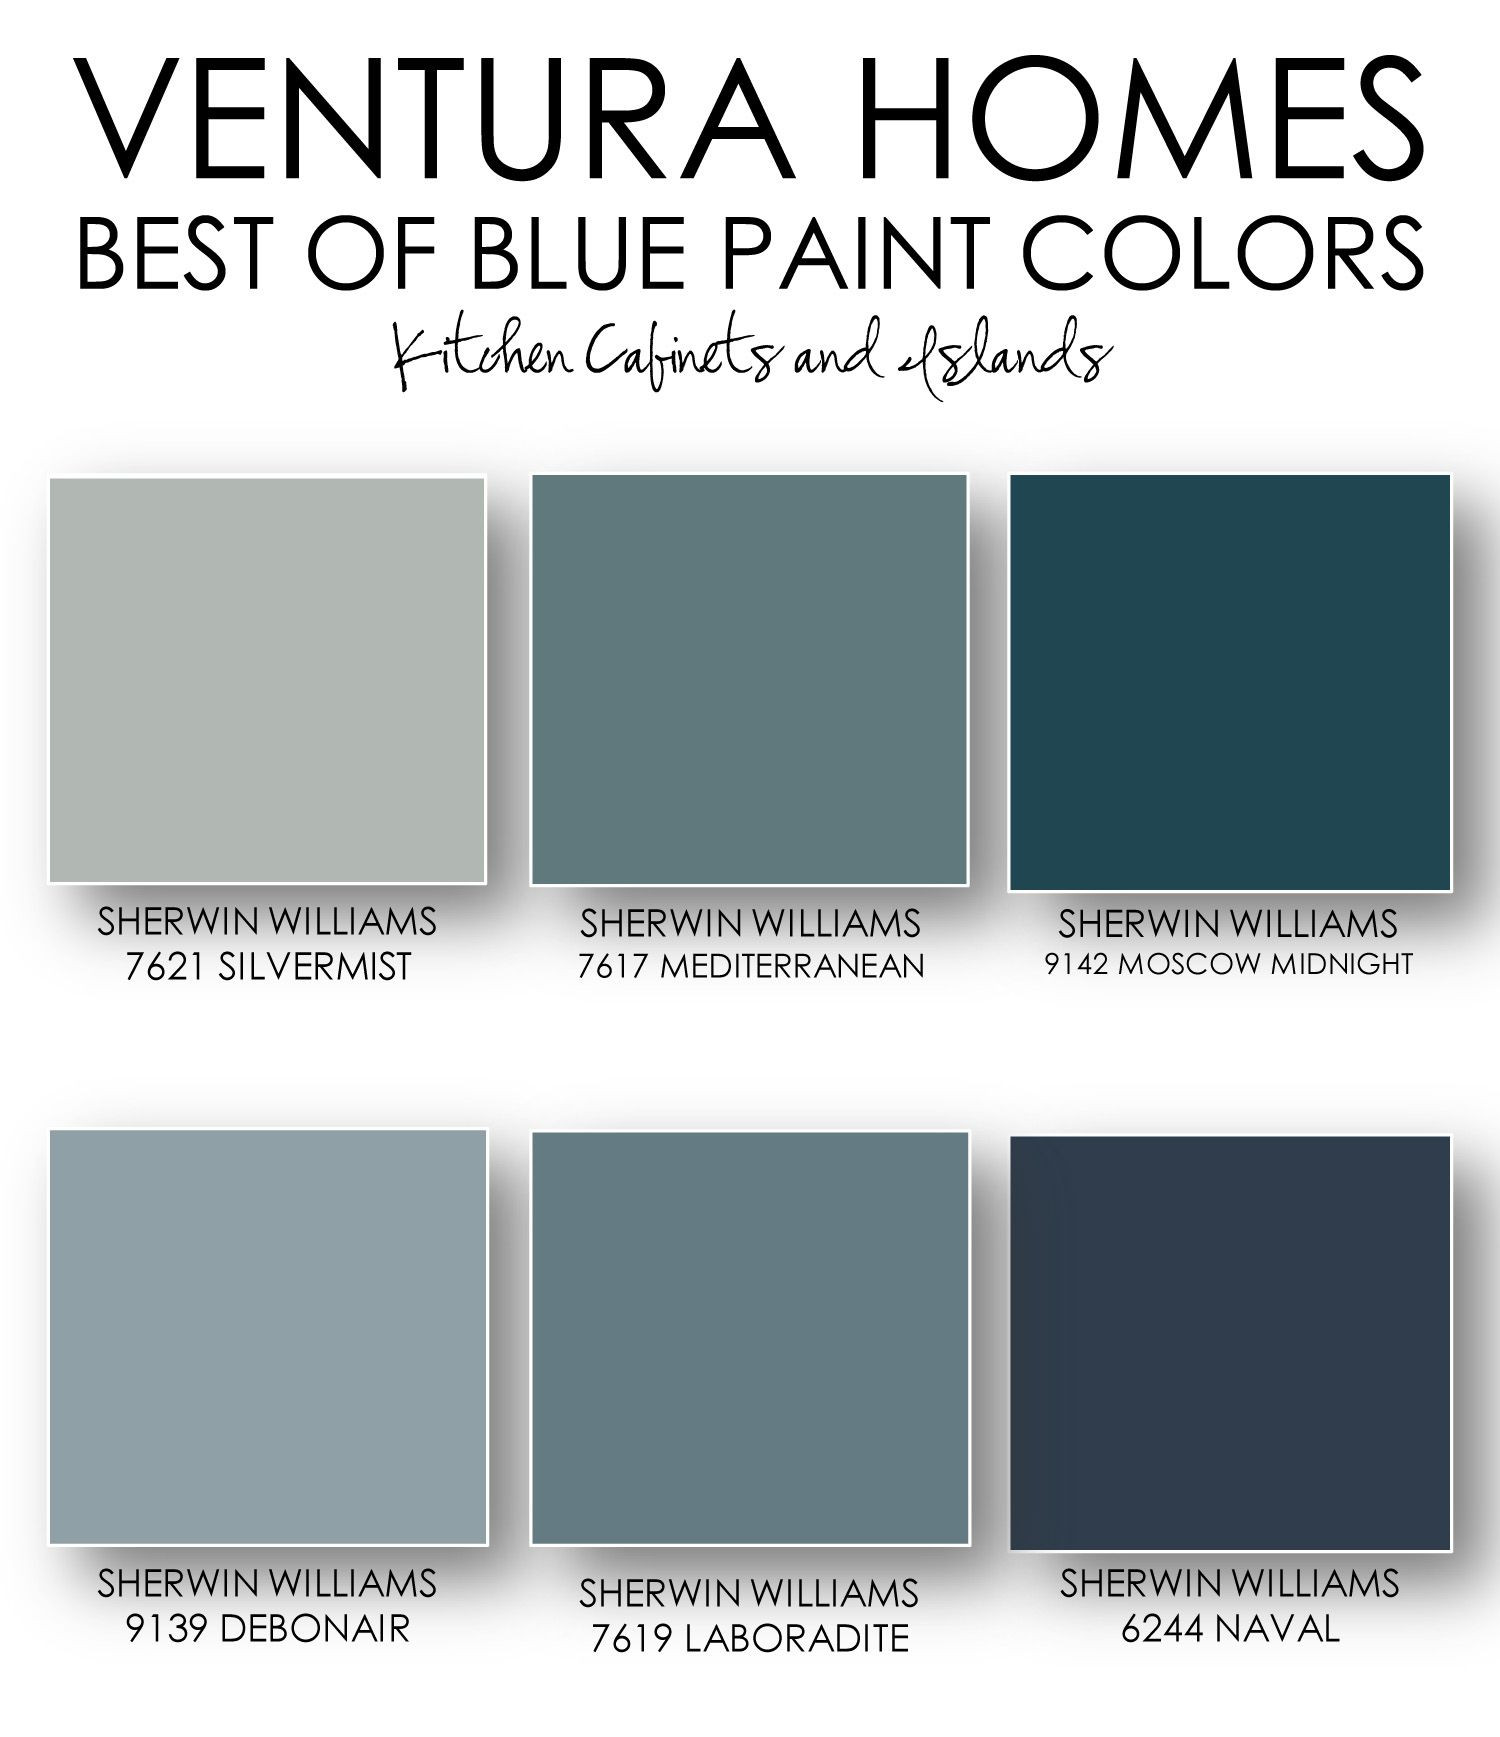 Best ideas about Sherwin-Williams Paint Colors . Save or Pin the blog Ventura Homes Best of Blue Paint Colors Now.